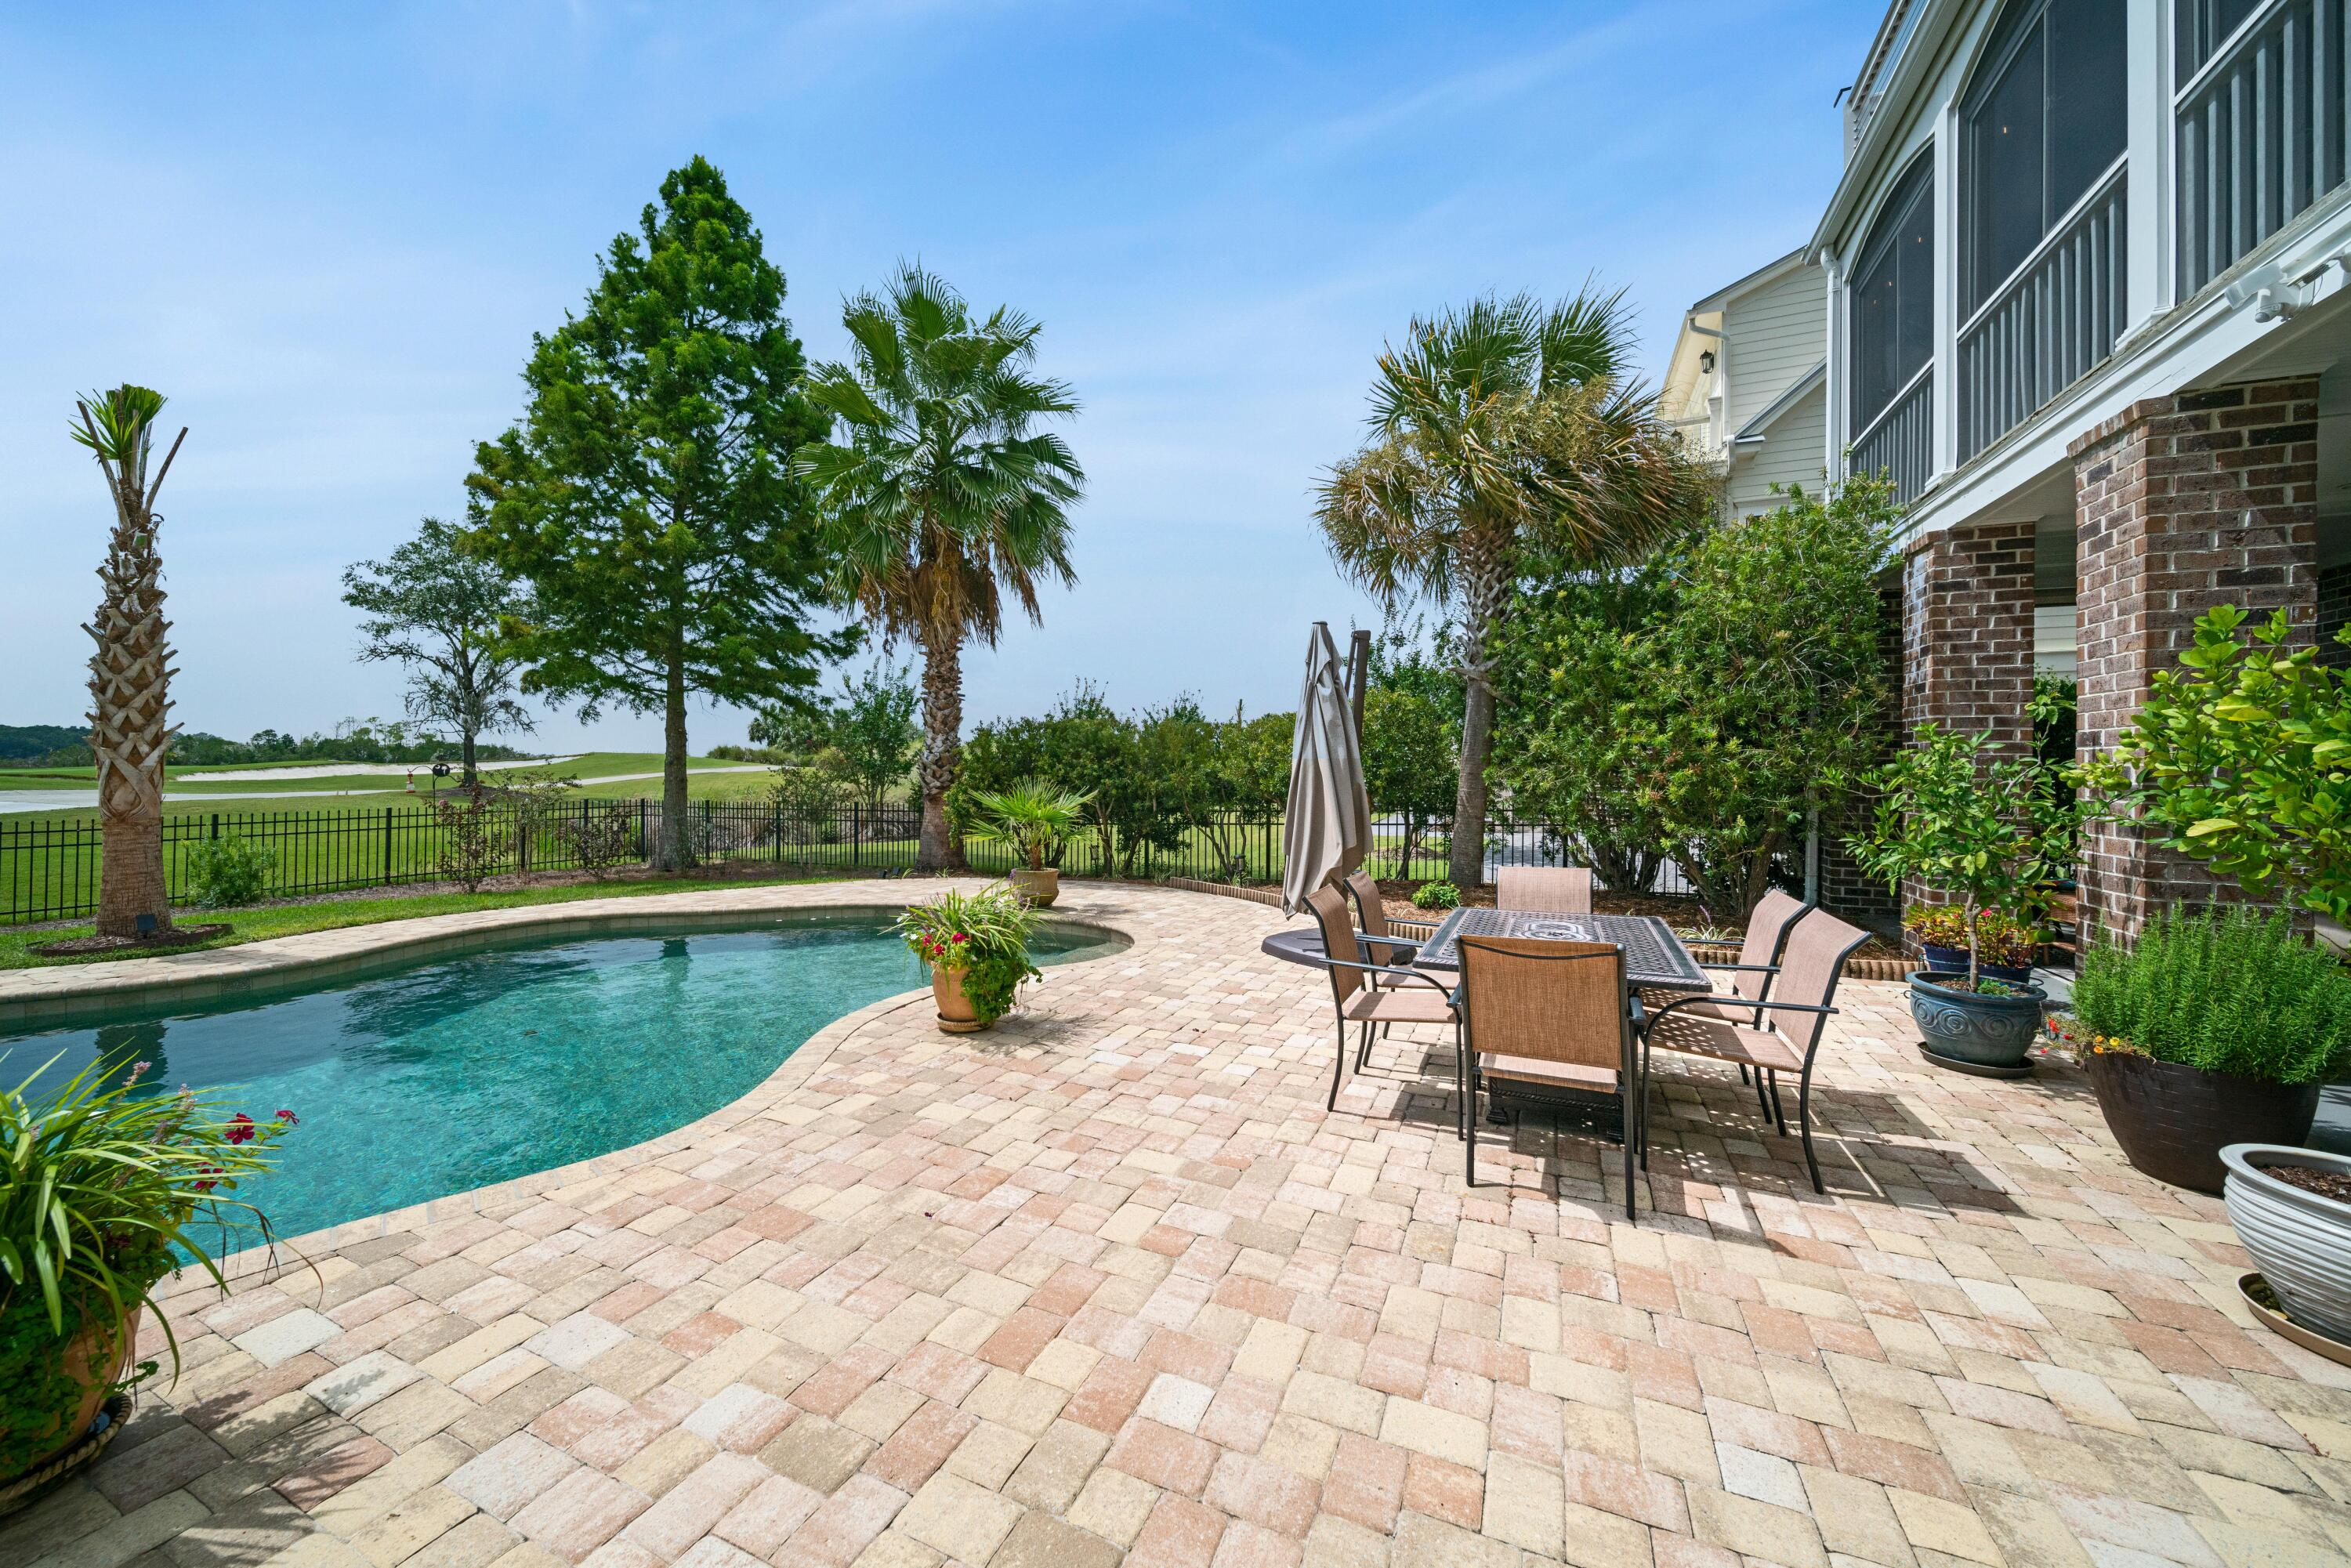 Rivertowne Country Club Homes For Sale - 1652 Rivertowne Country Club, Mount Pleasant, SC - 6